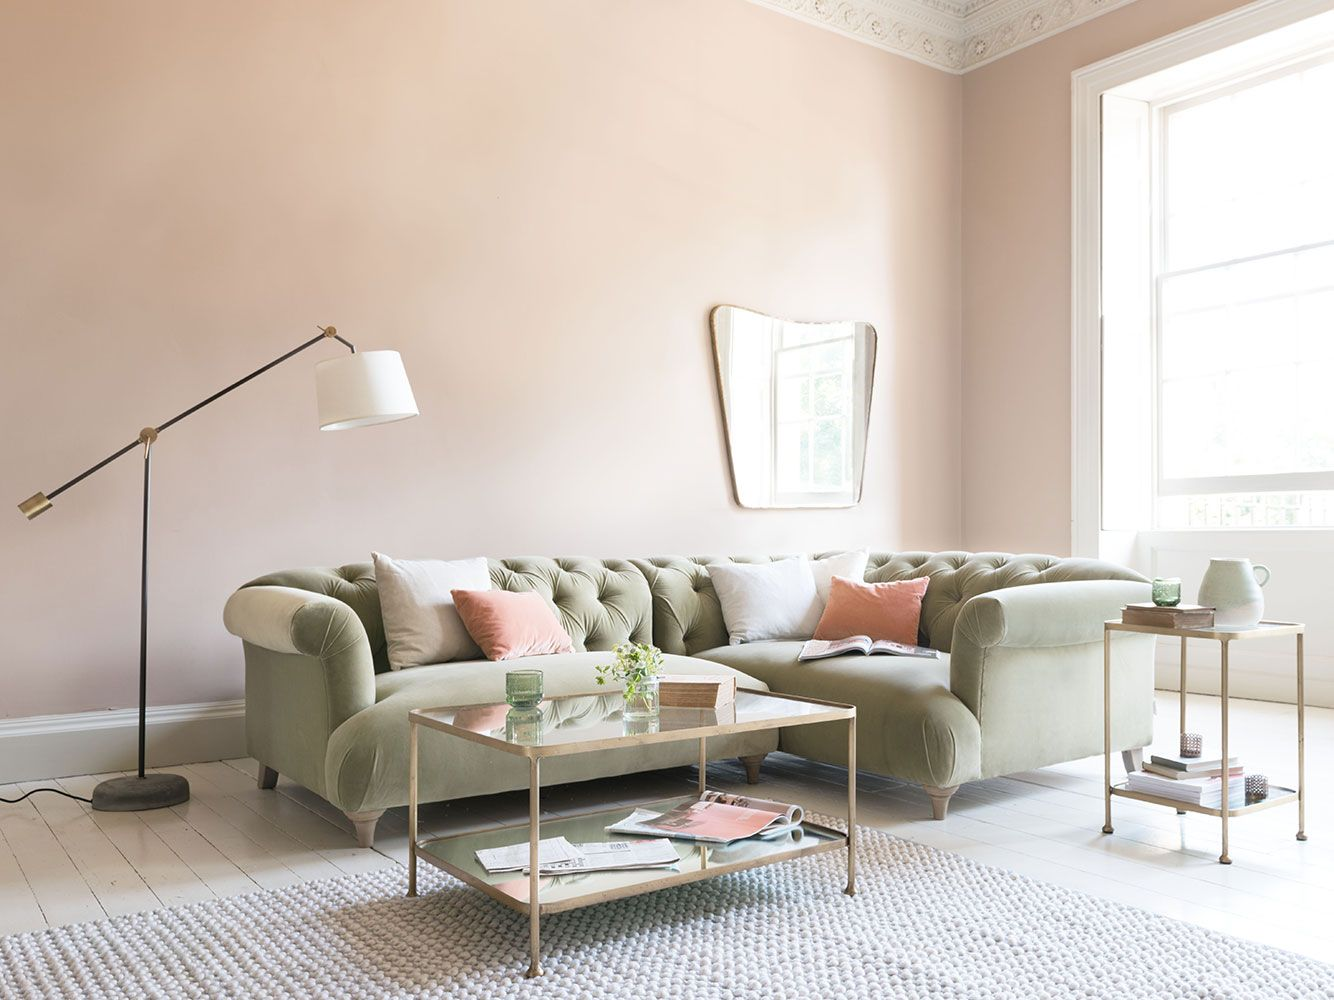 Dixie Corner Sofa | Corner, Chesterfield and Living room ideas